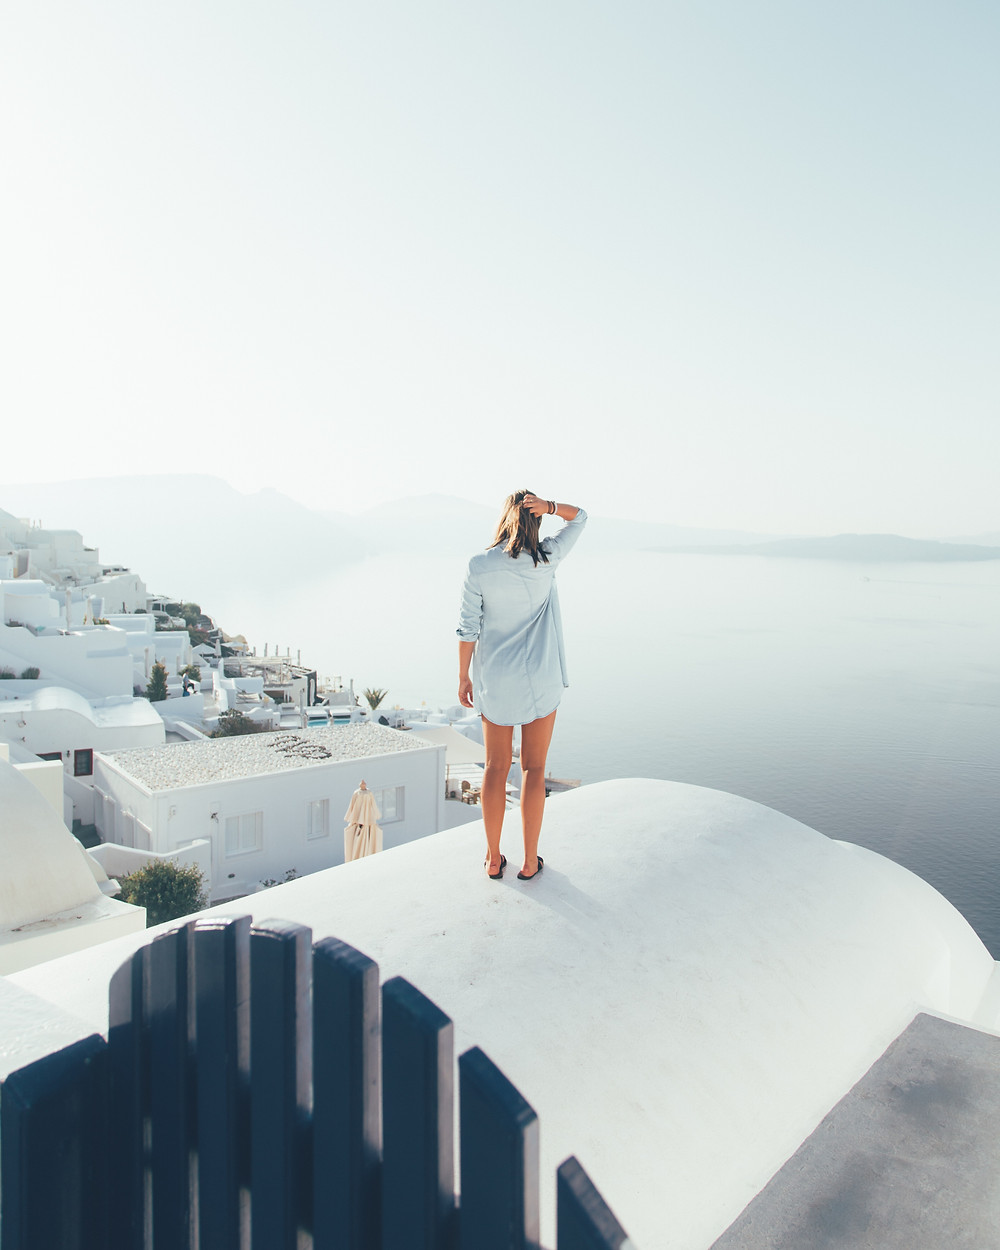 White woman standing on top of a house in Greece overlooking the ocean